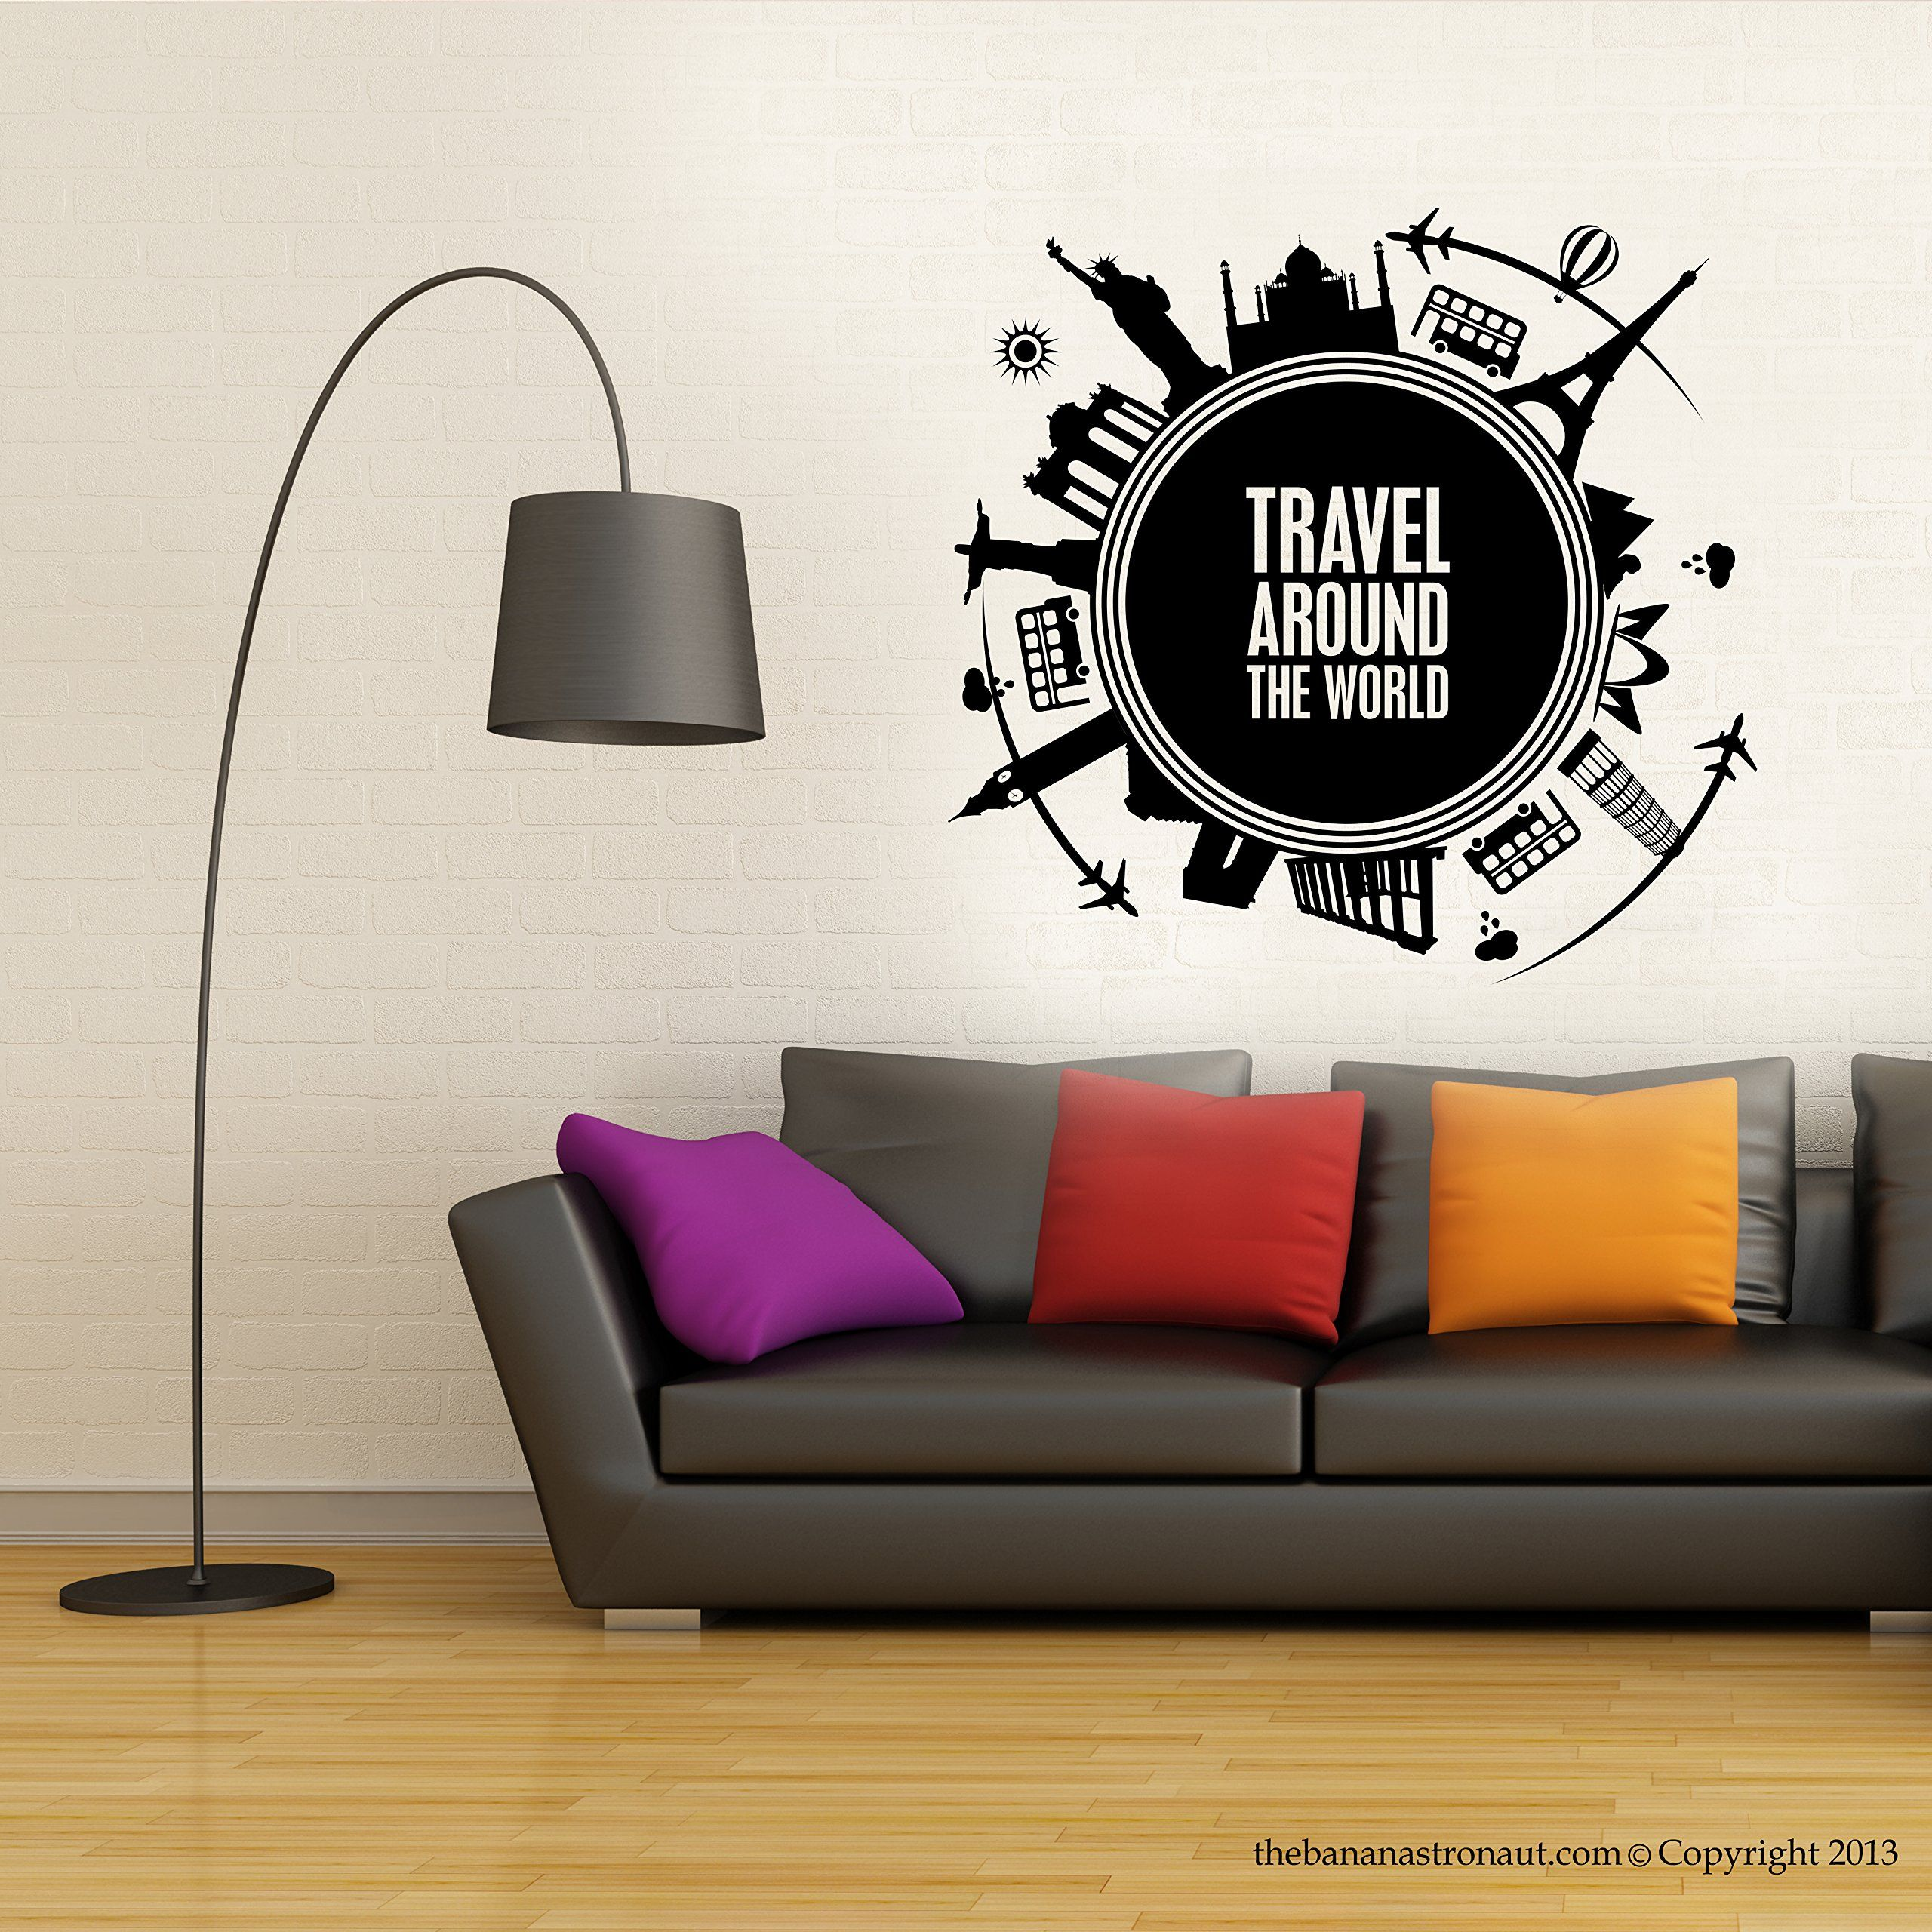 Amazon 999 wall decal travel around the world map modern amazon 999 wall decal travel around the world map modern look gumiabroncs Choice Image